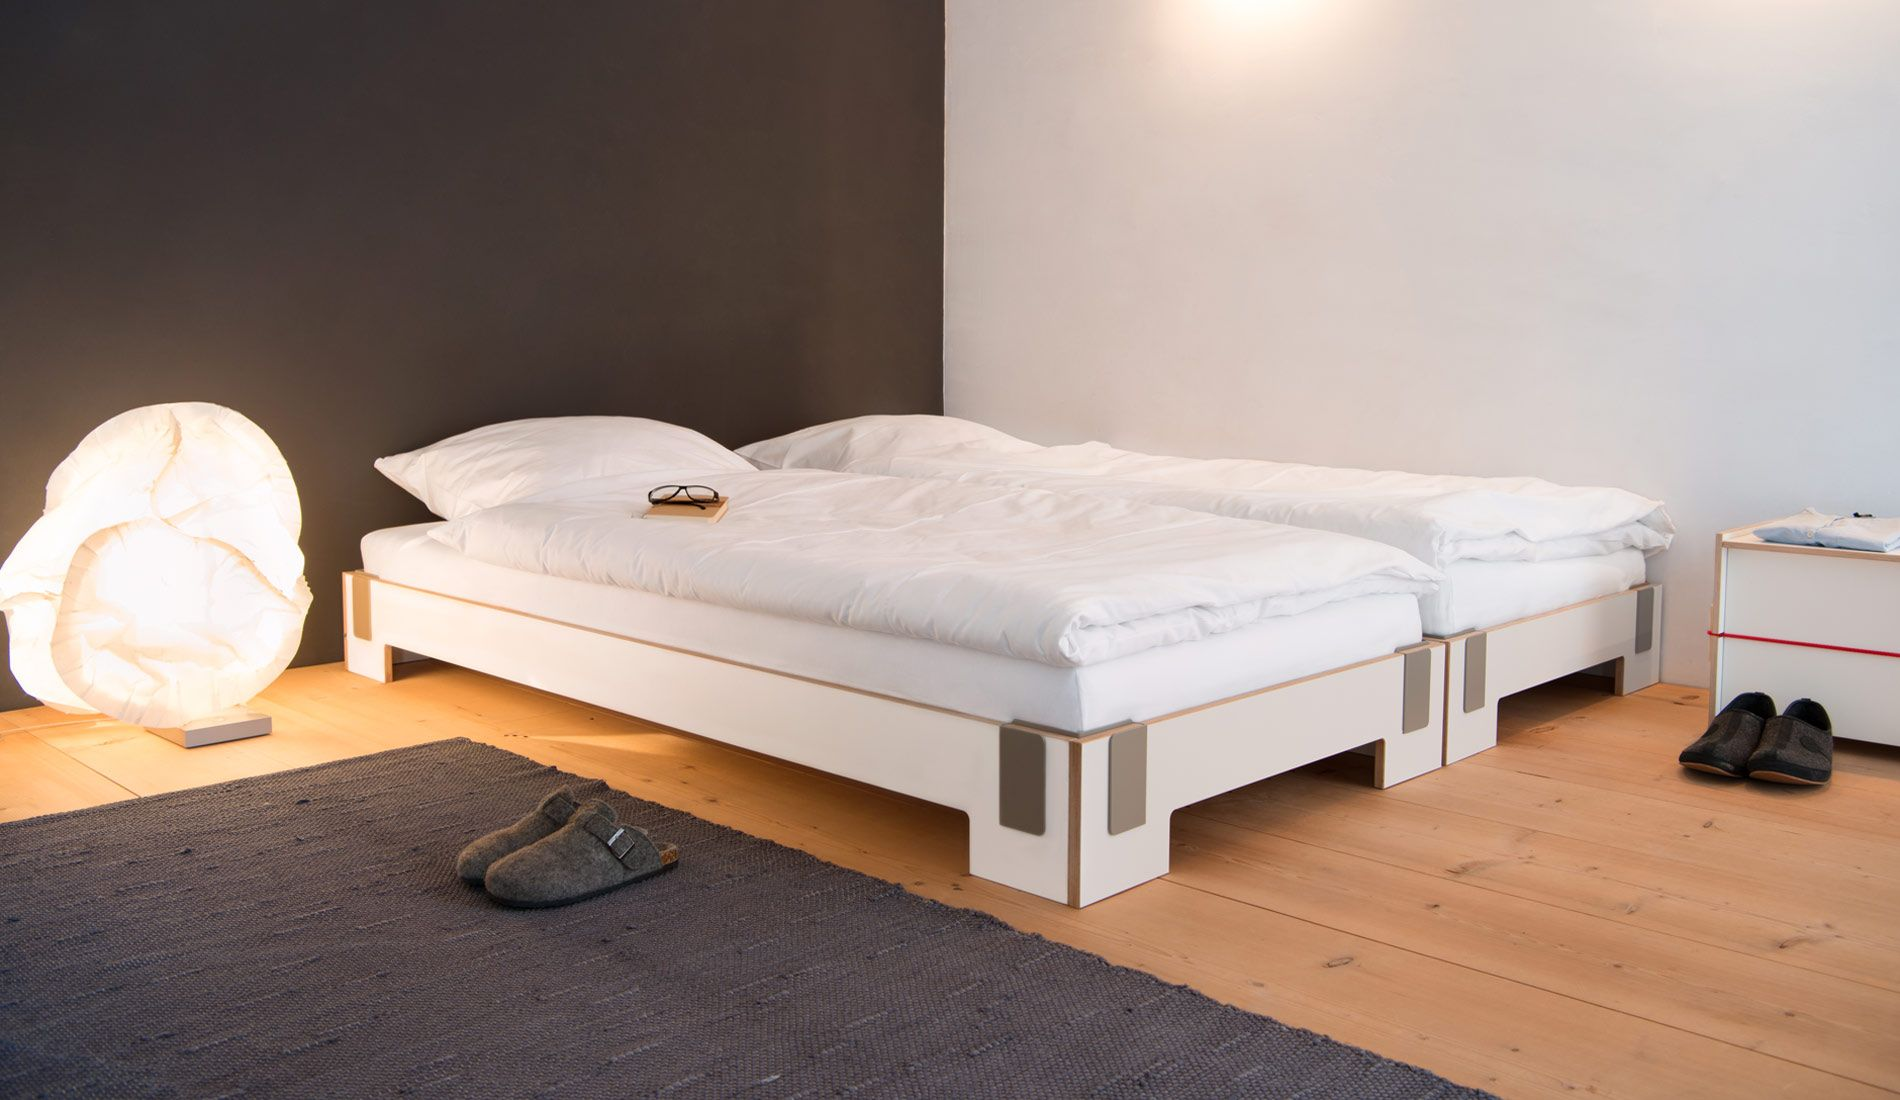 moormann_tagedieb-stackable-bed